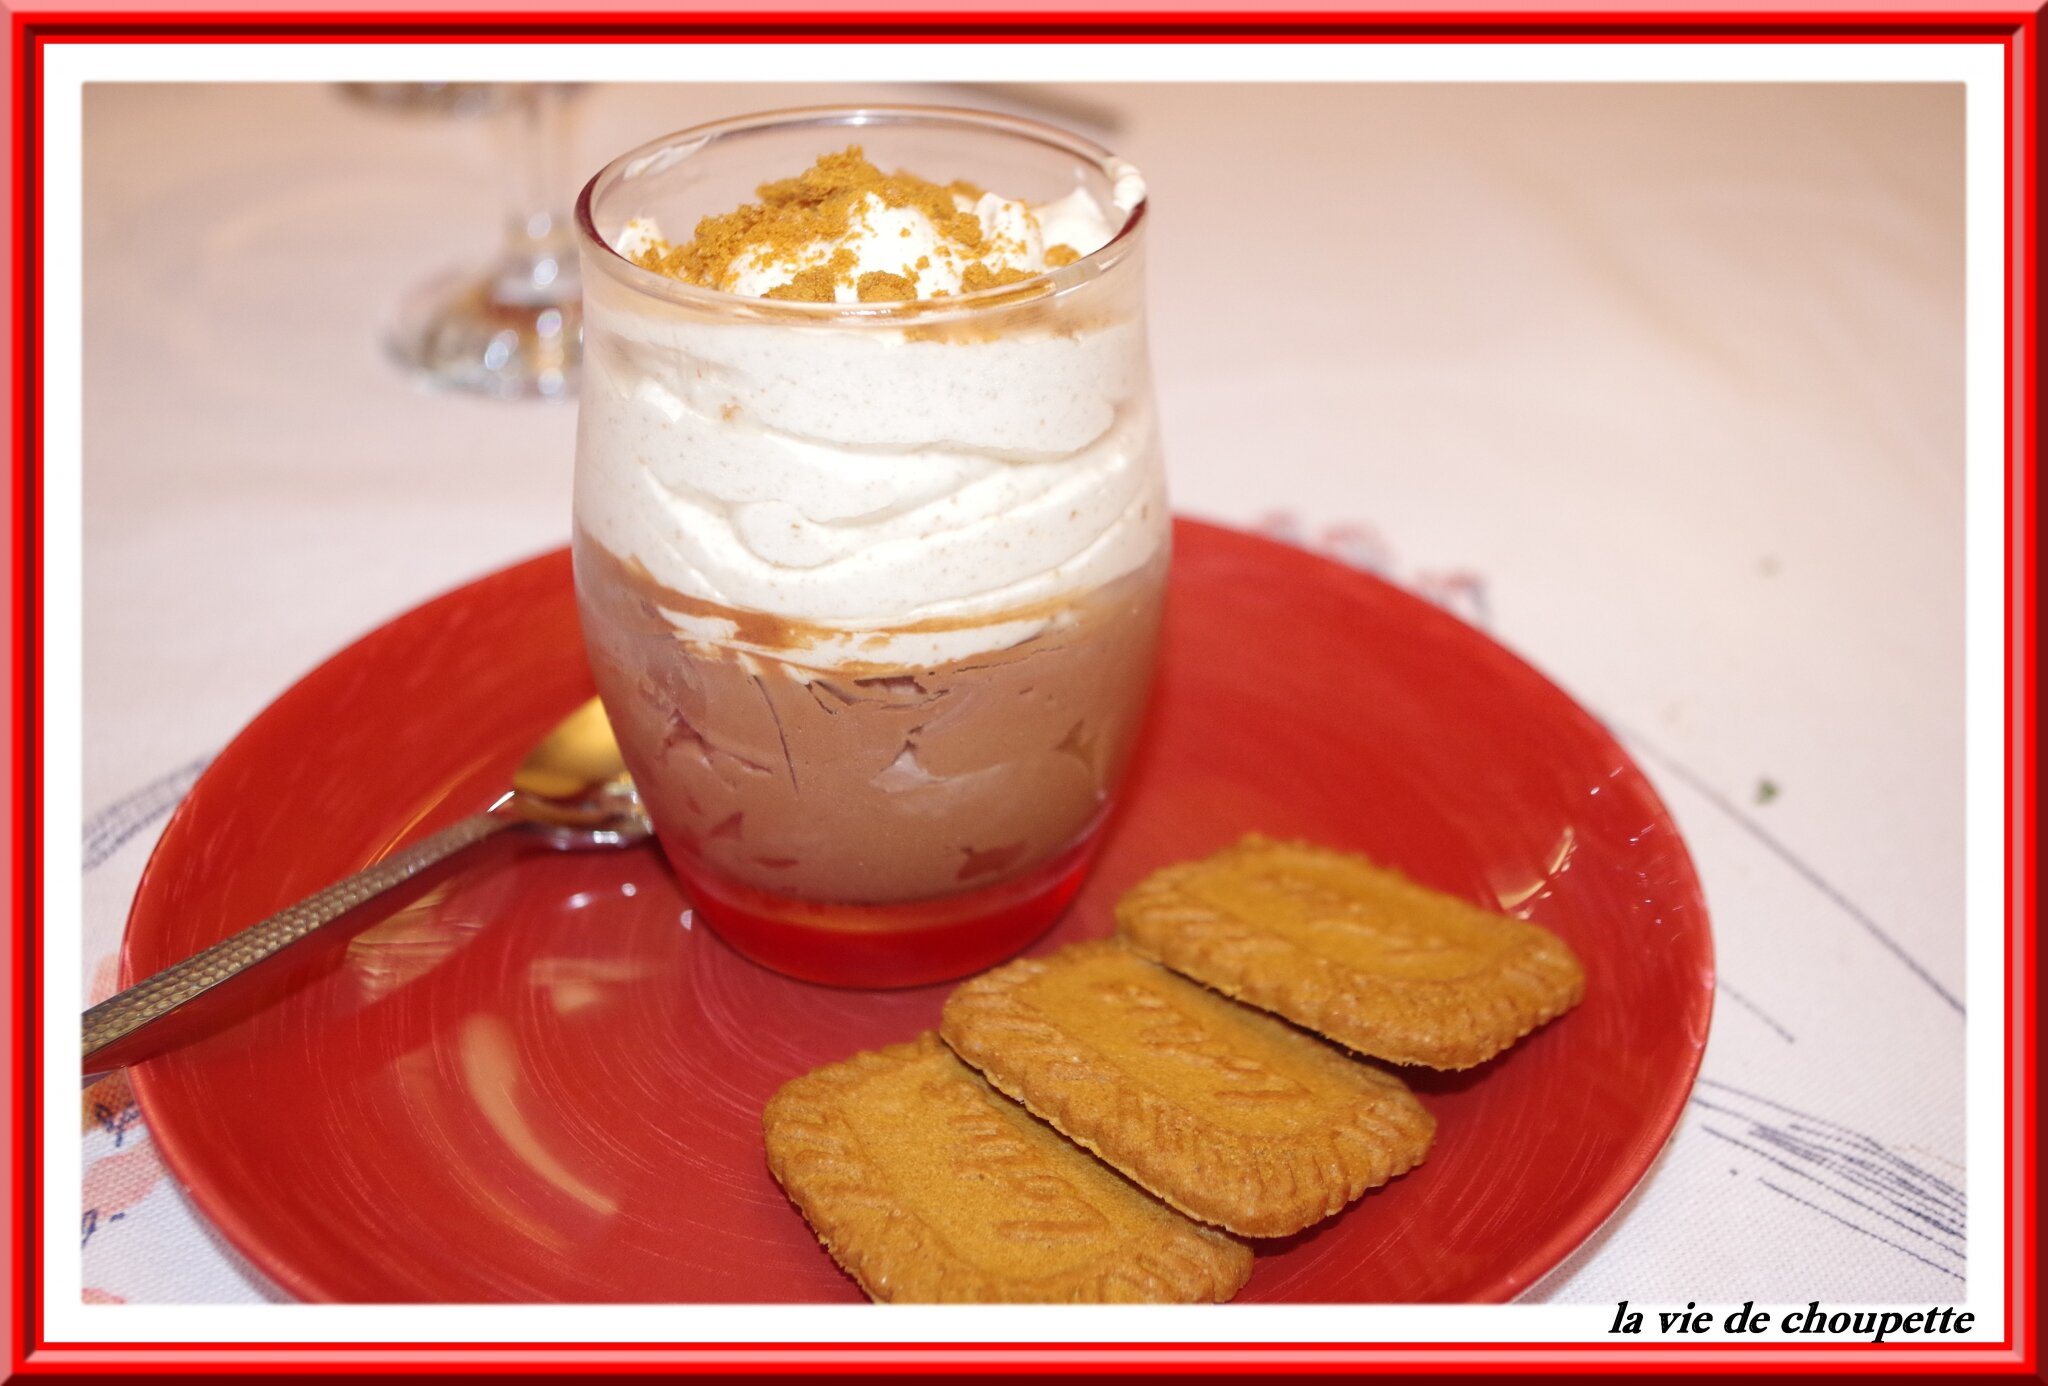 MOUSSES CHOCO-CAFE ET SPECULOOS